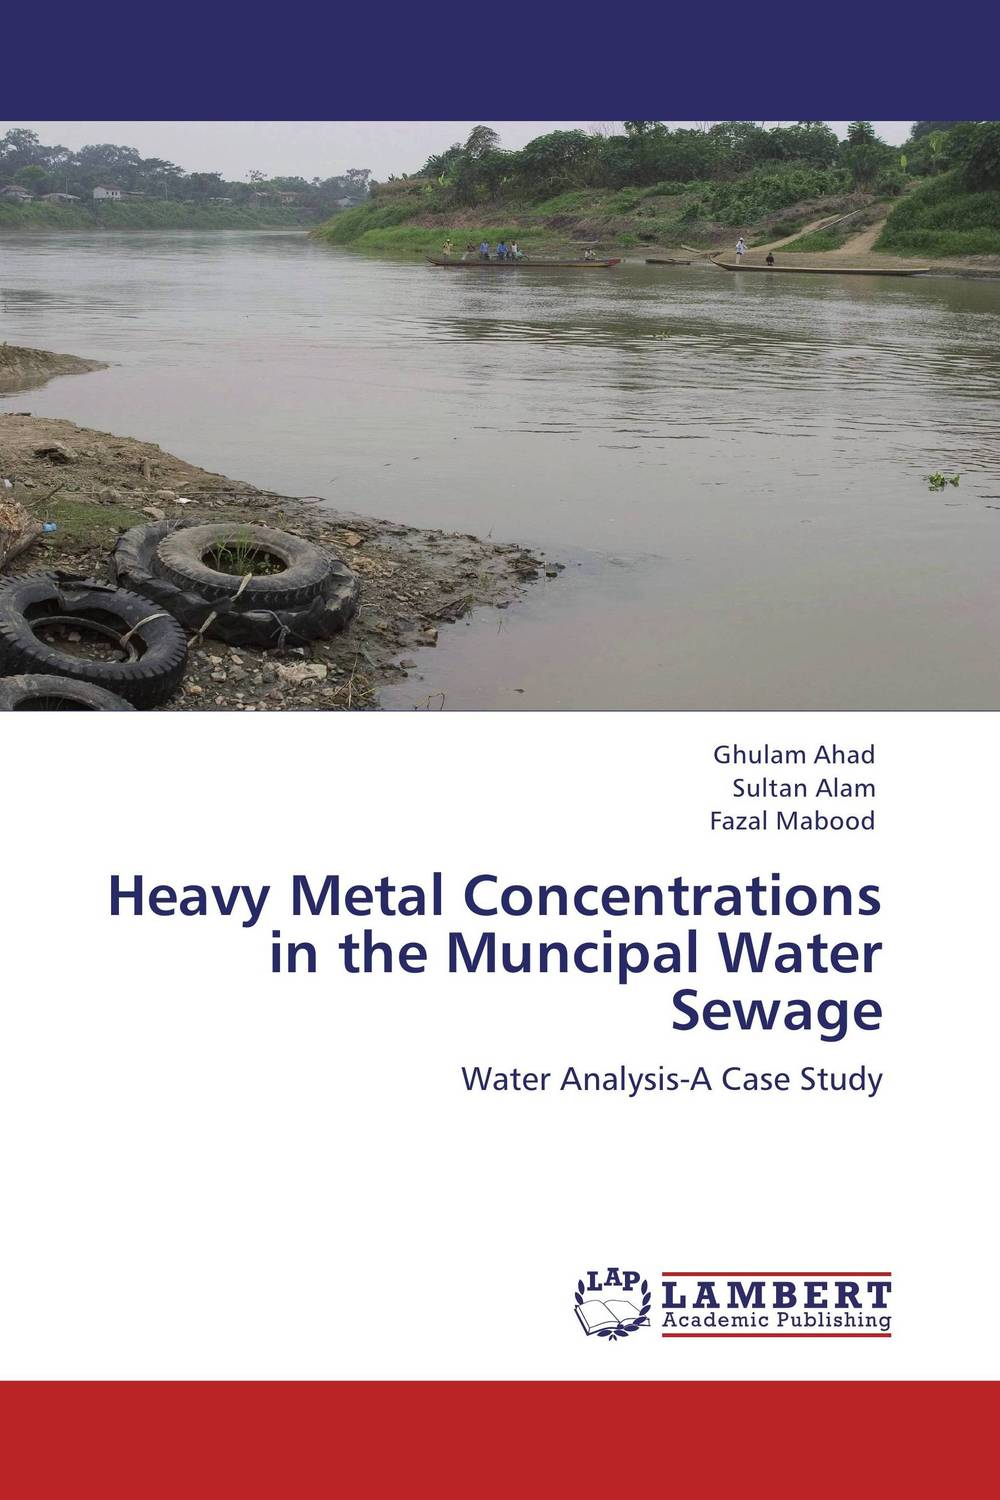 Heavy Metal Concentrations in the Muncipal Water Sewage фильтры помпы the source of water